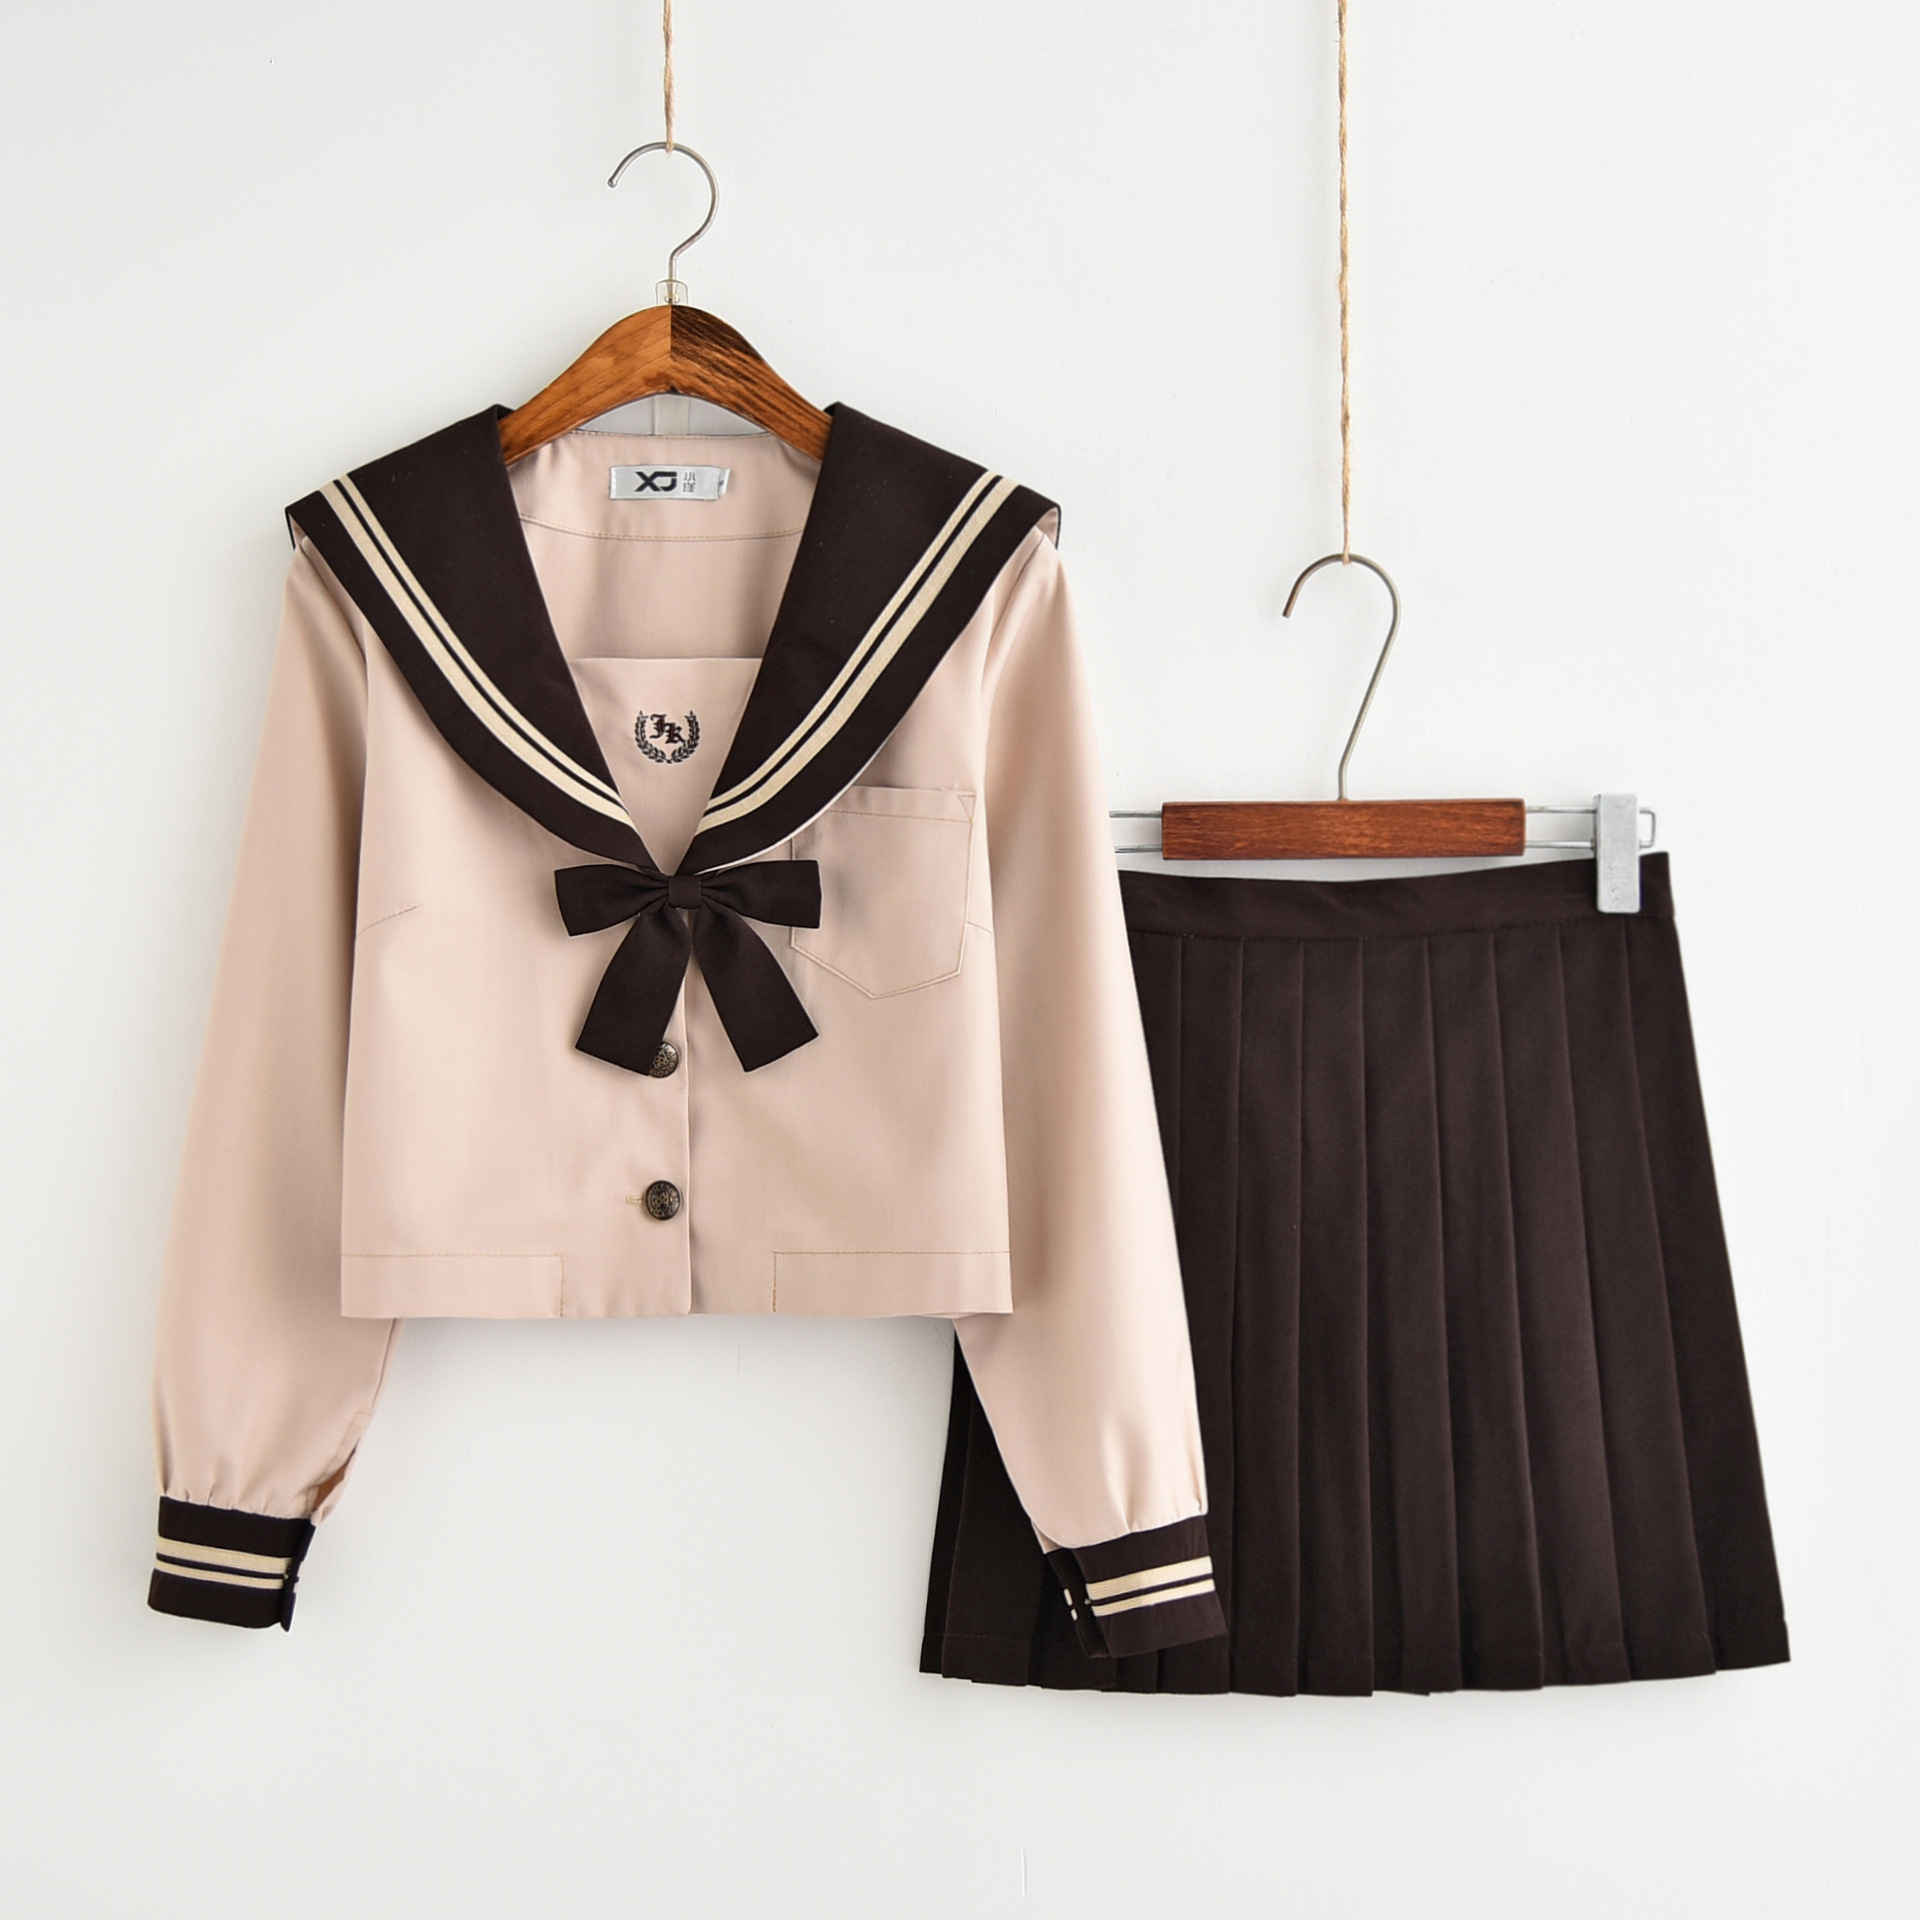 Japanese School Dress Uniforms Sailor Suit Cosplay College Middle Brown School Uniform For Girls Students Anime Pleated Skirt